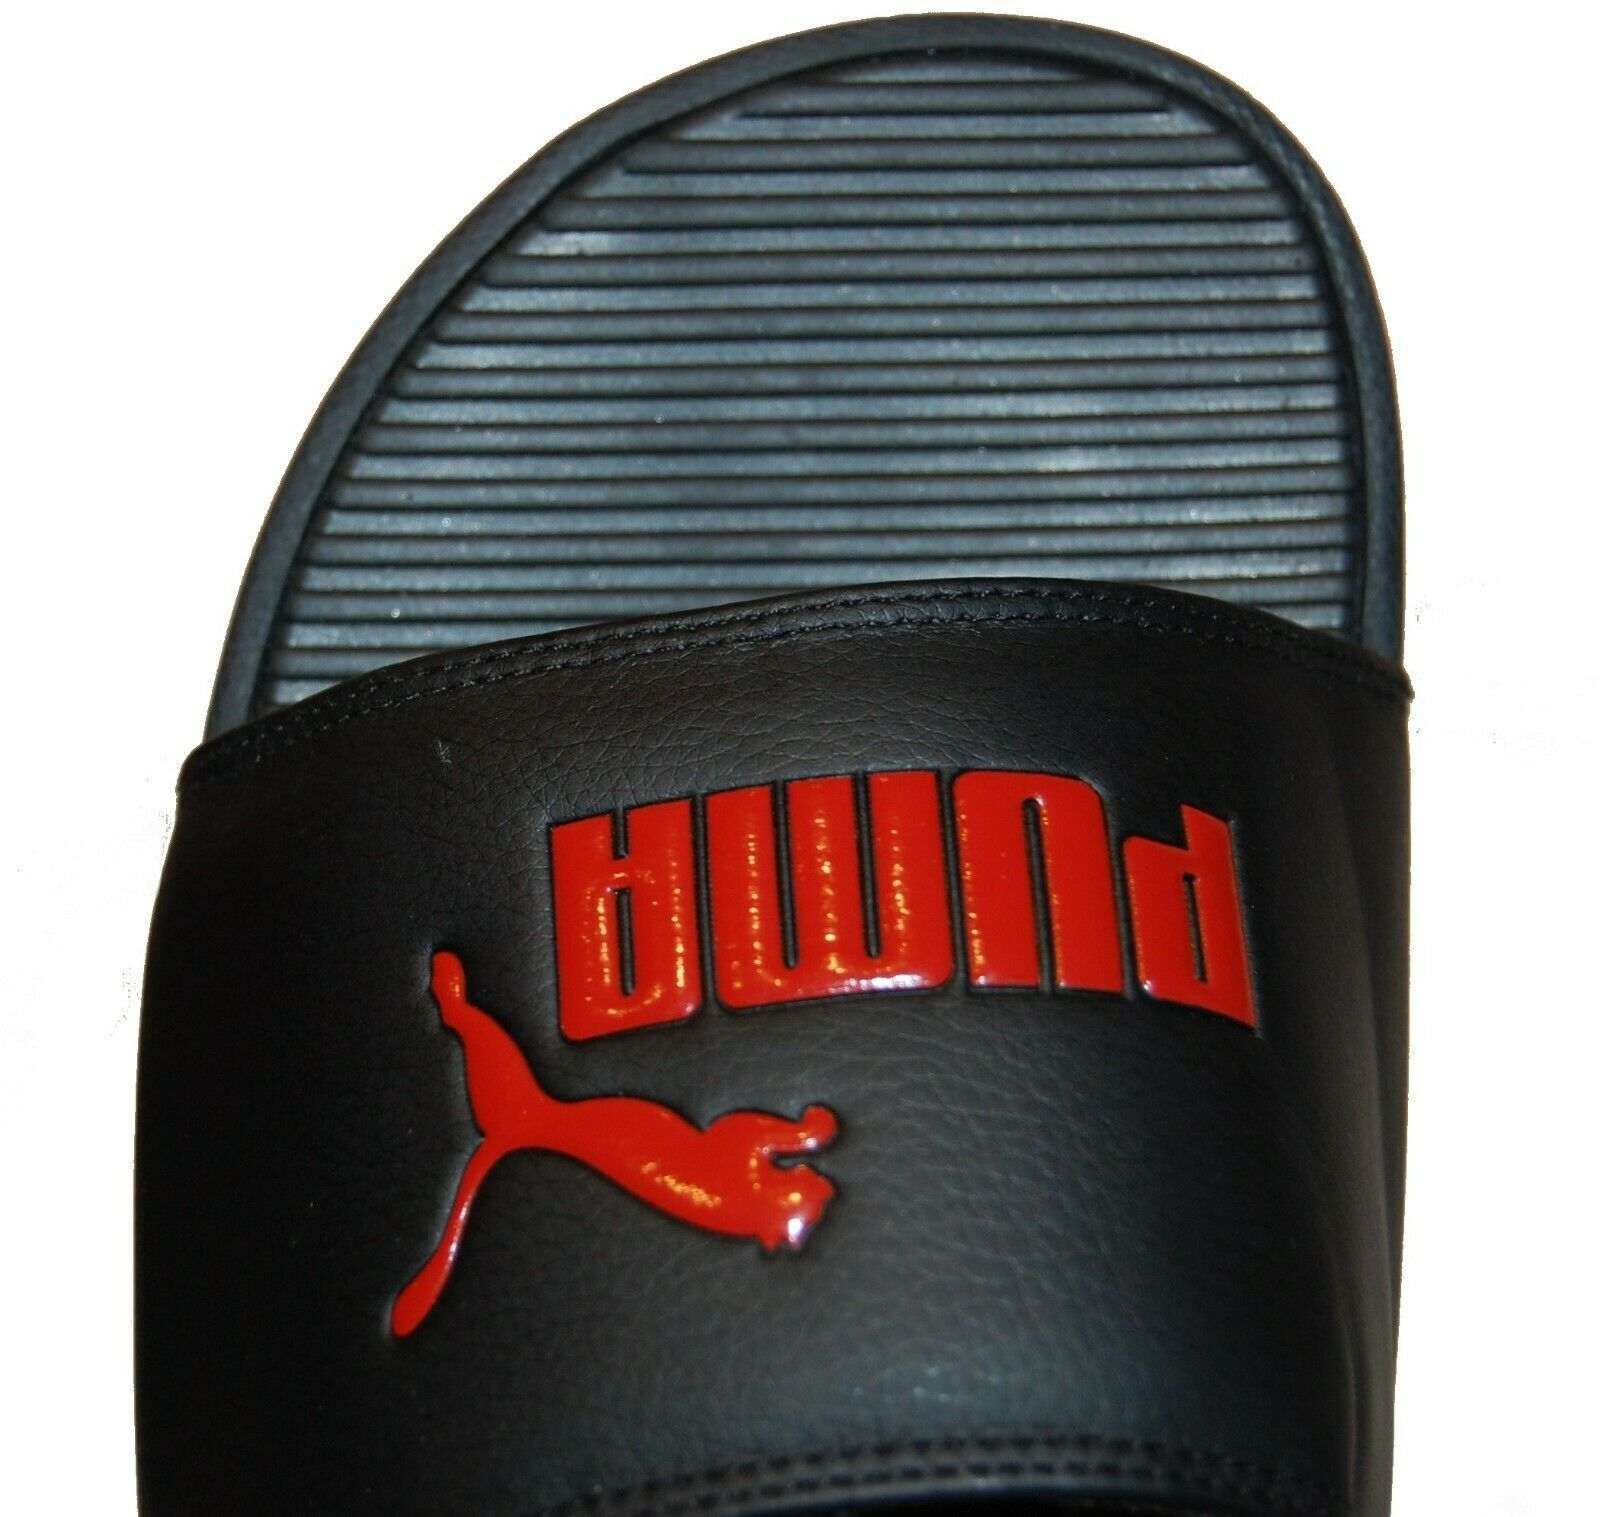 Puma  Men's Black Red logo Print Flip Flop Sandal Shoes Size EU 45 US 12